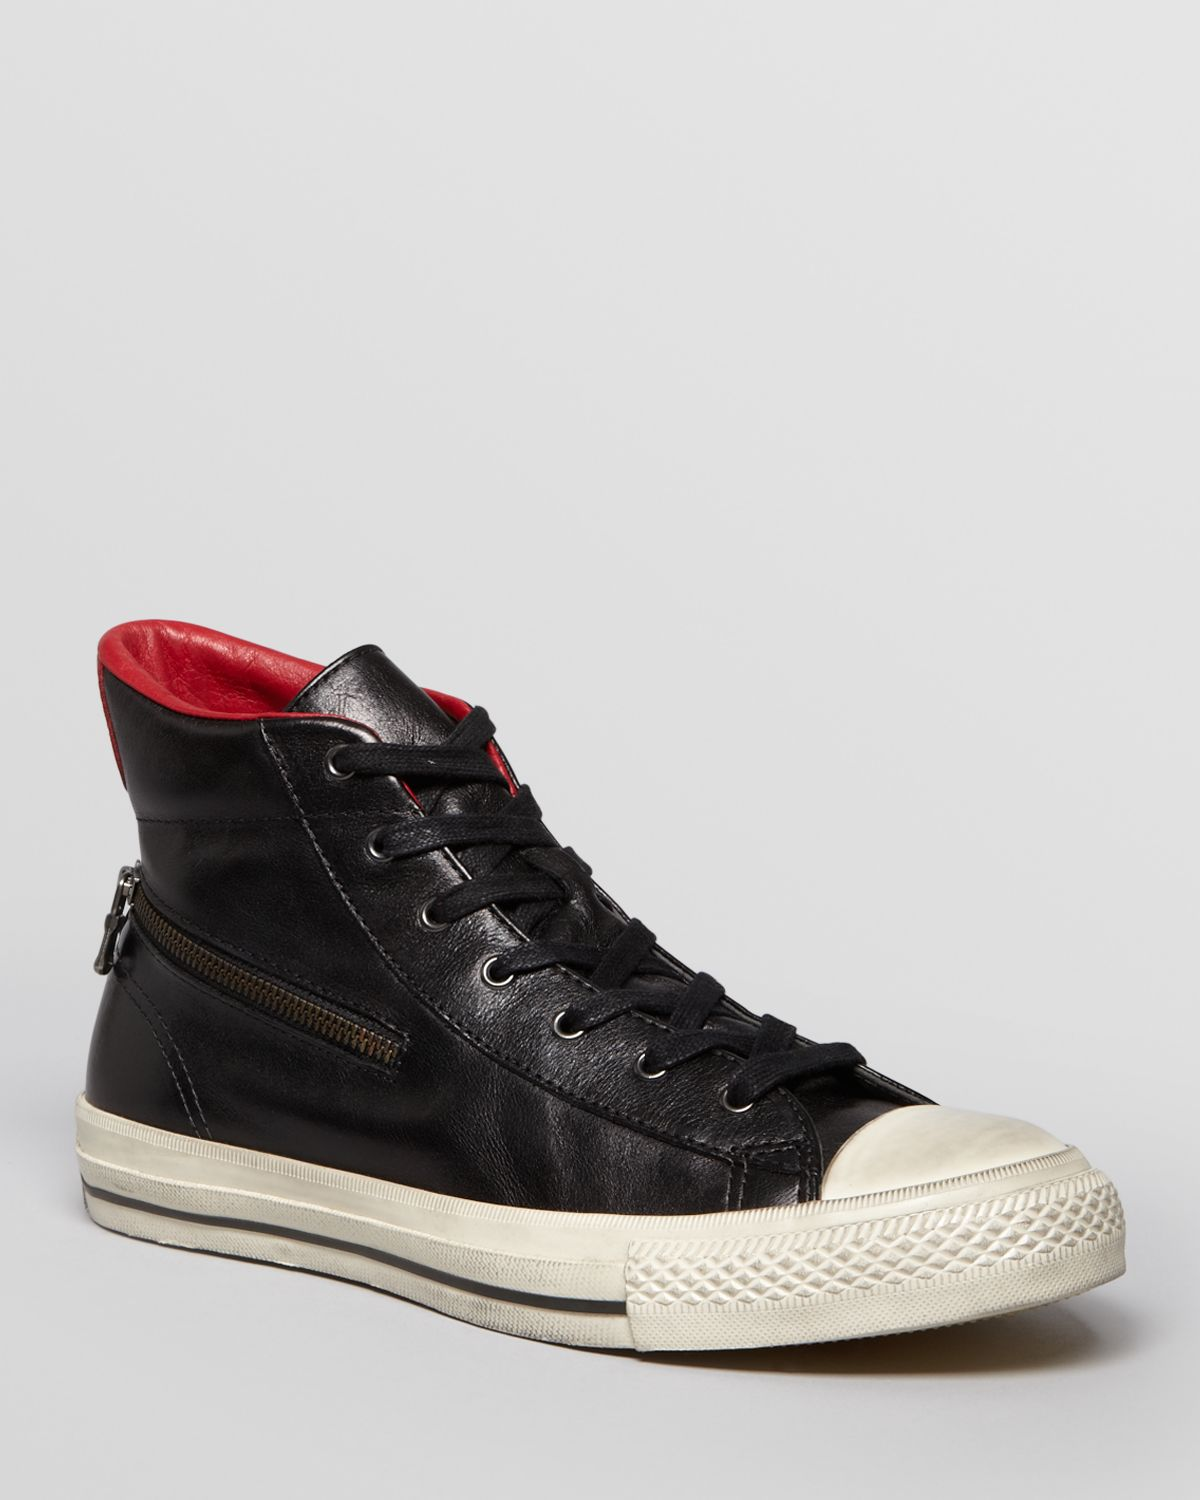 aadc7f4924d8 Lyst - Converse Chuck Taylor All Star Zip Leather High Tops in Black ...